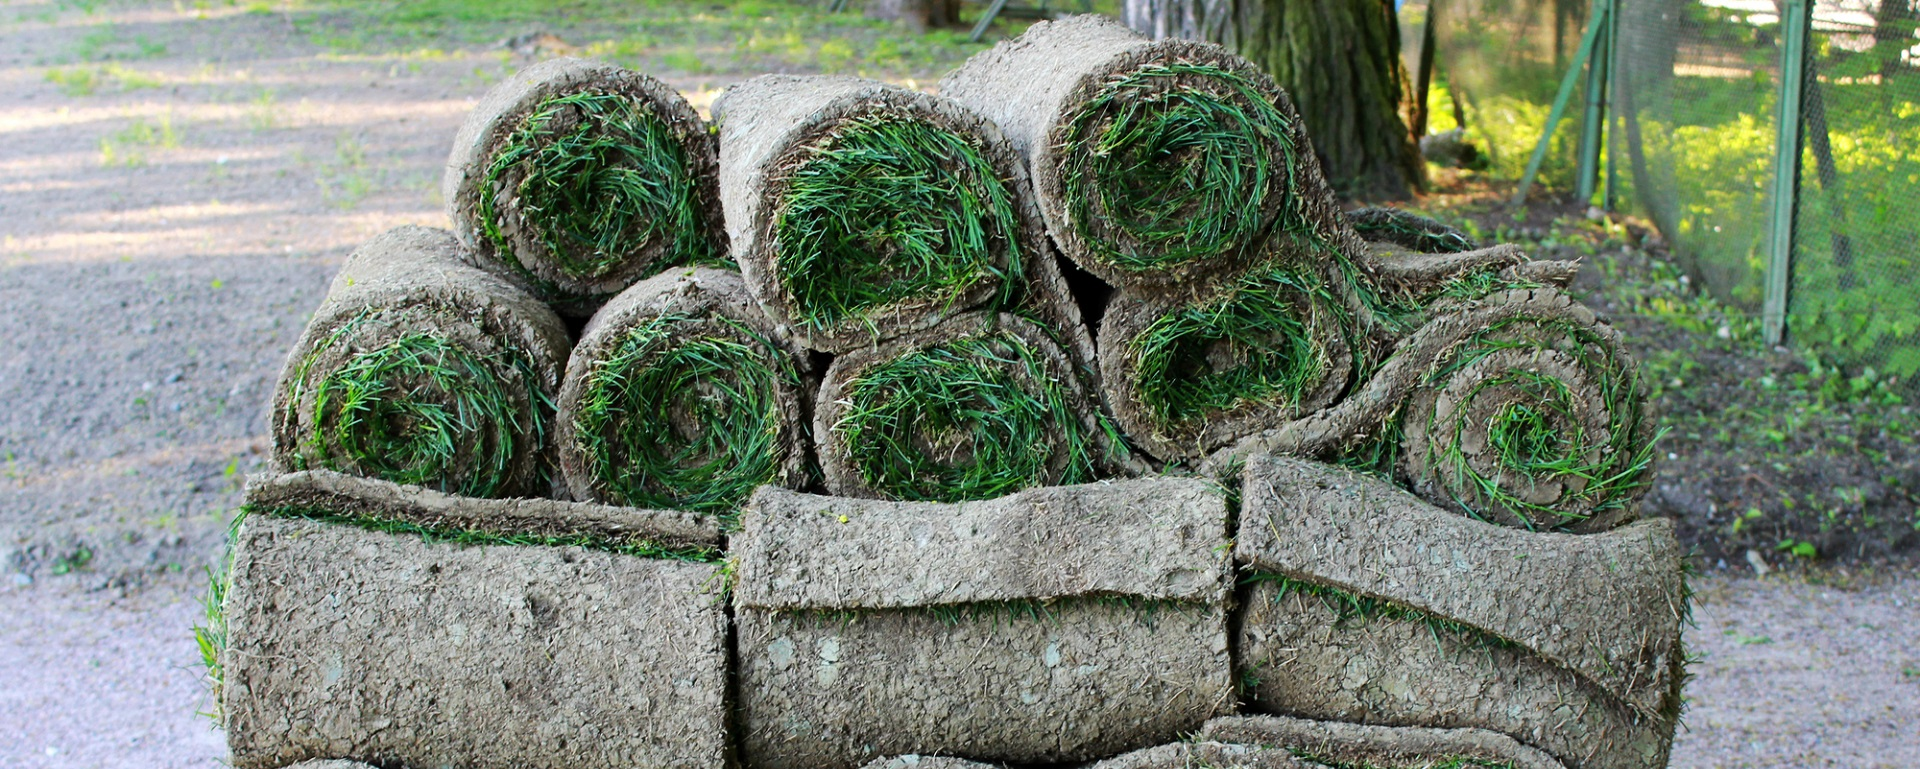 Paradise Turf Farm rolls of turf